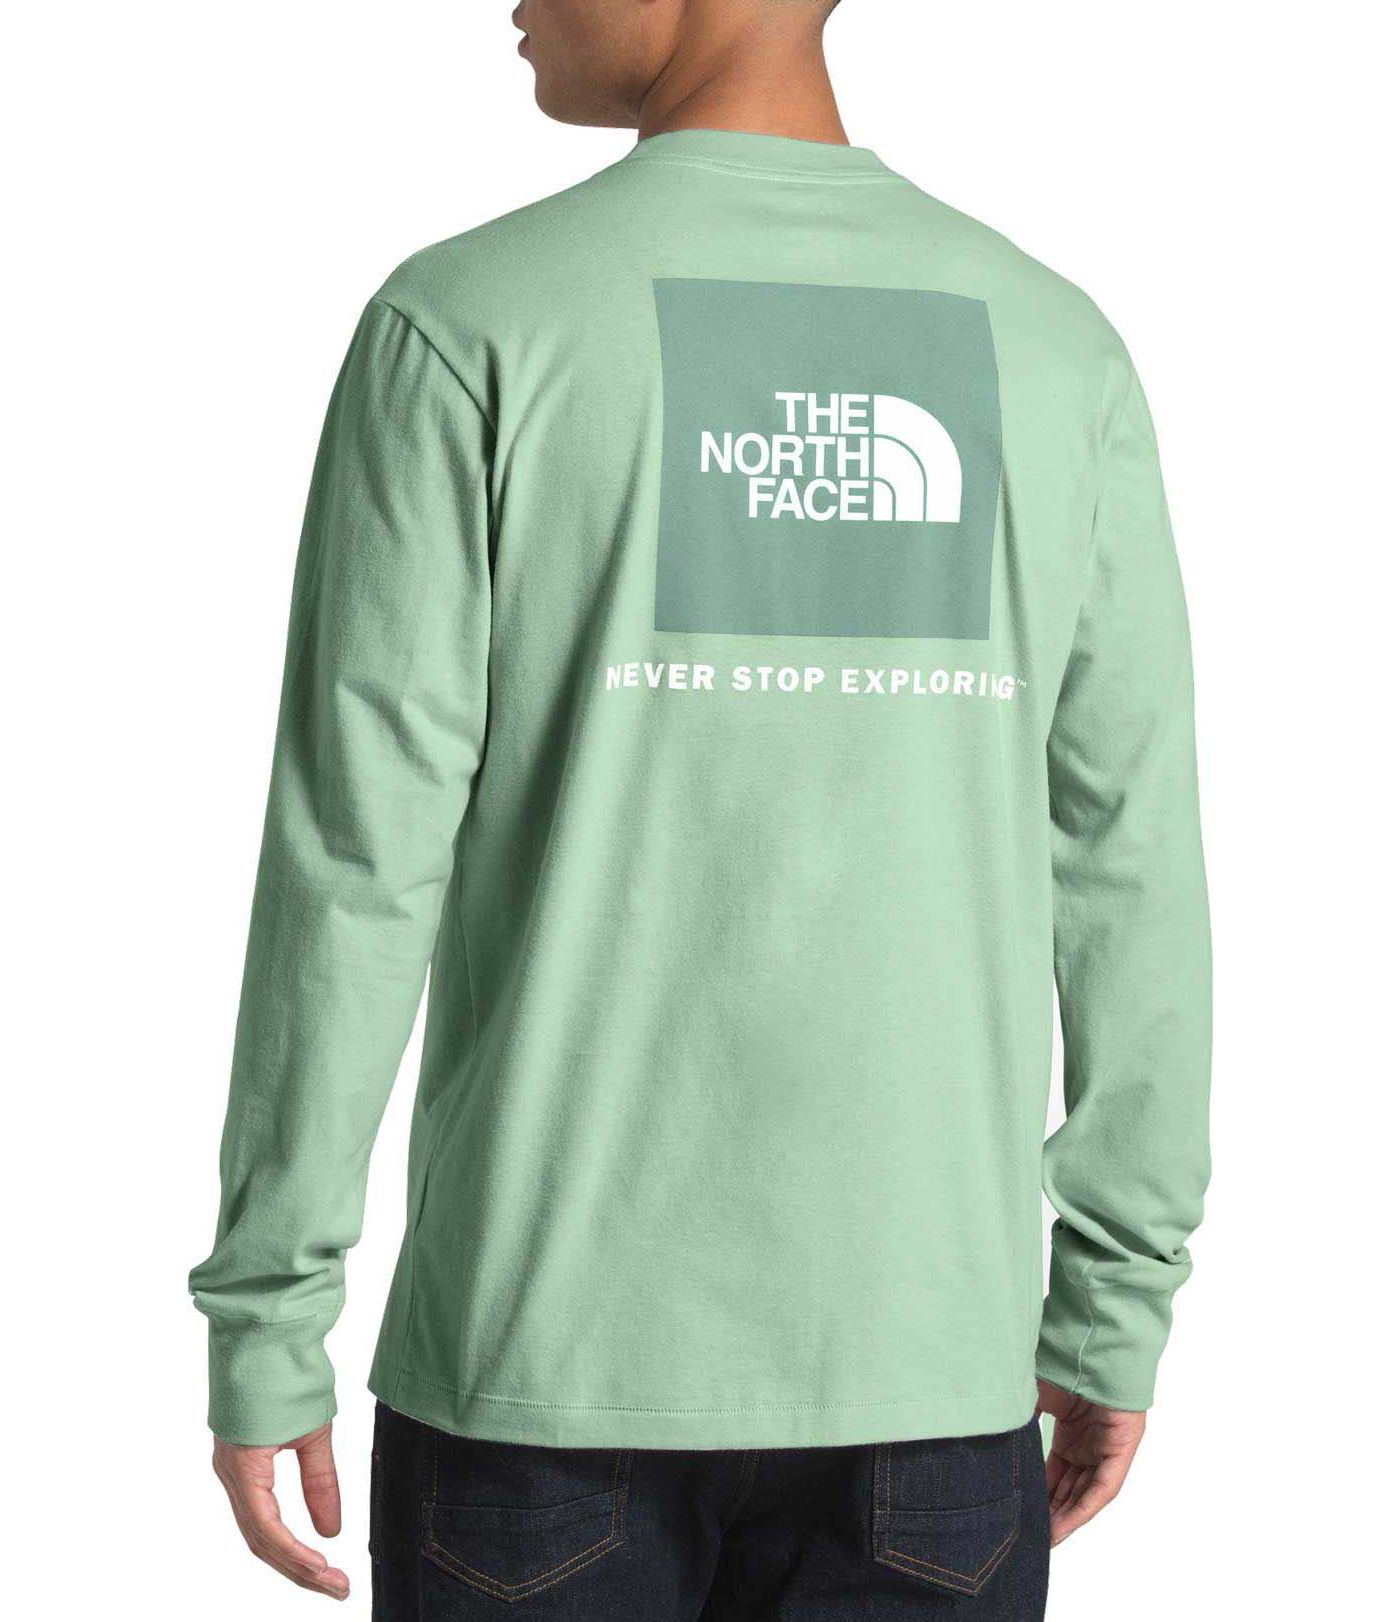 The North Face Men's Long Sleeve Red Box Fashion T-Shirt